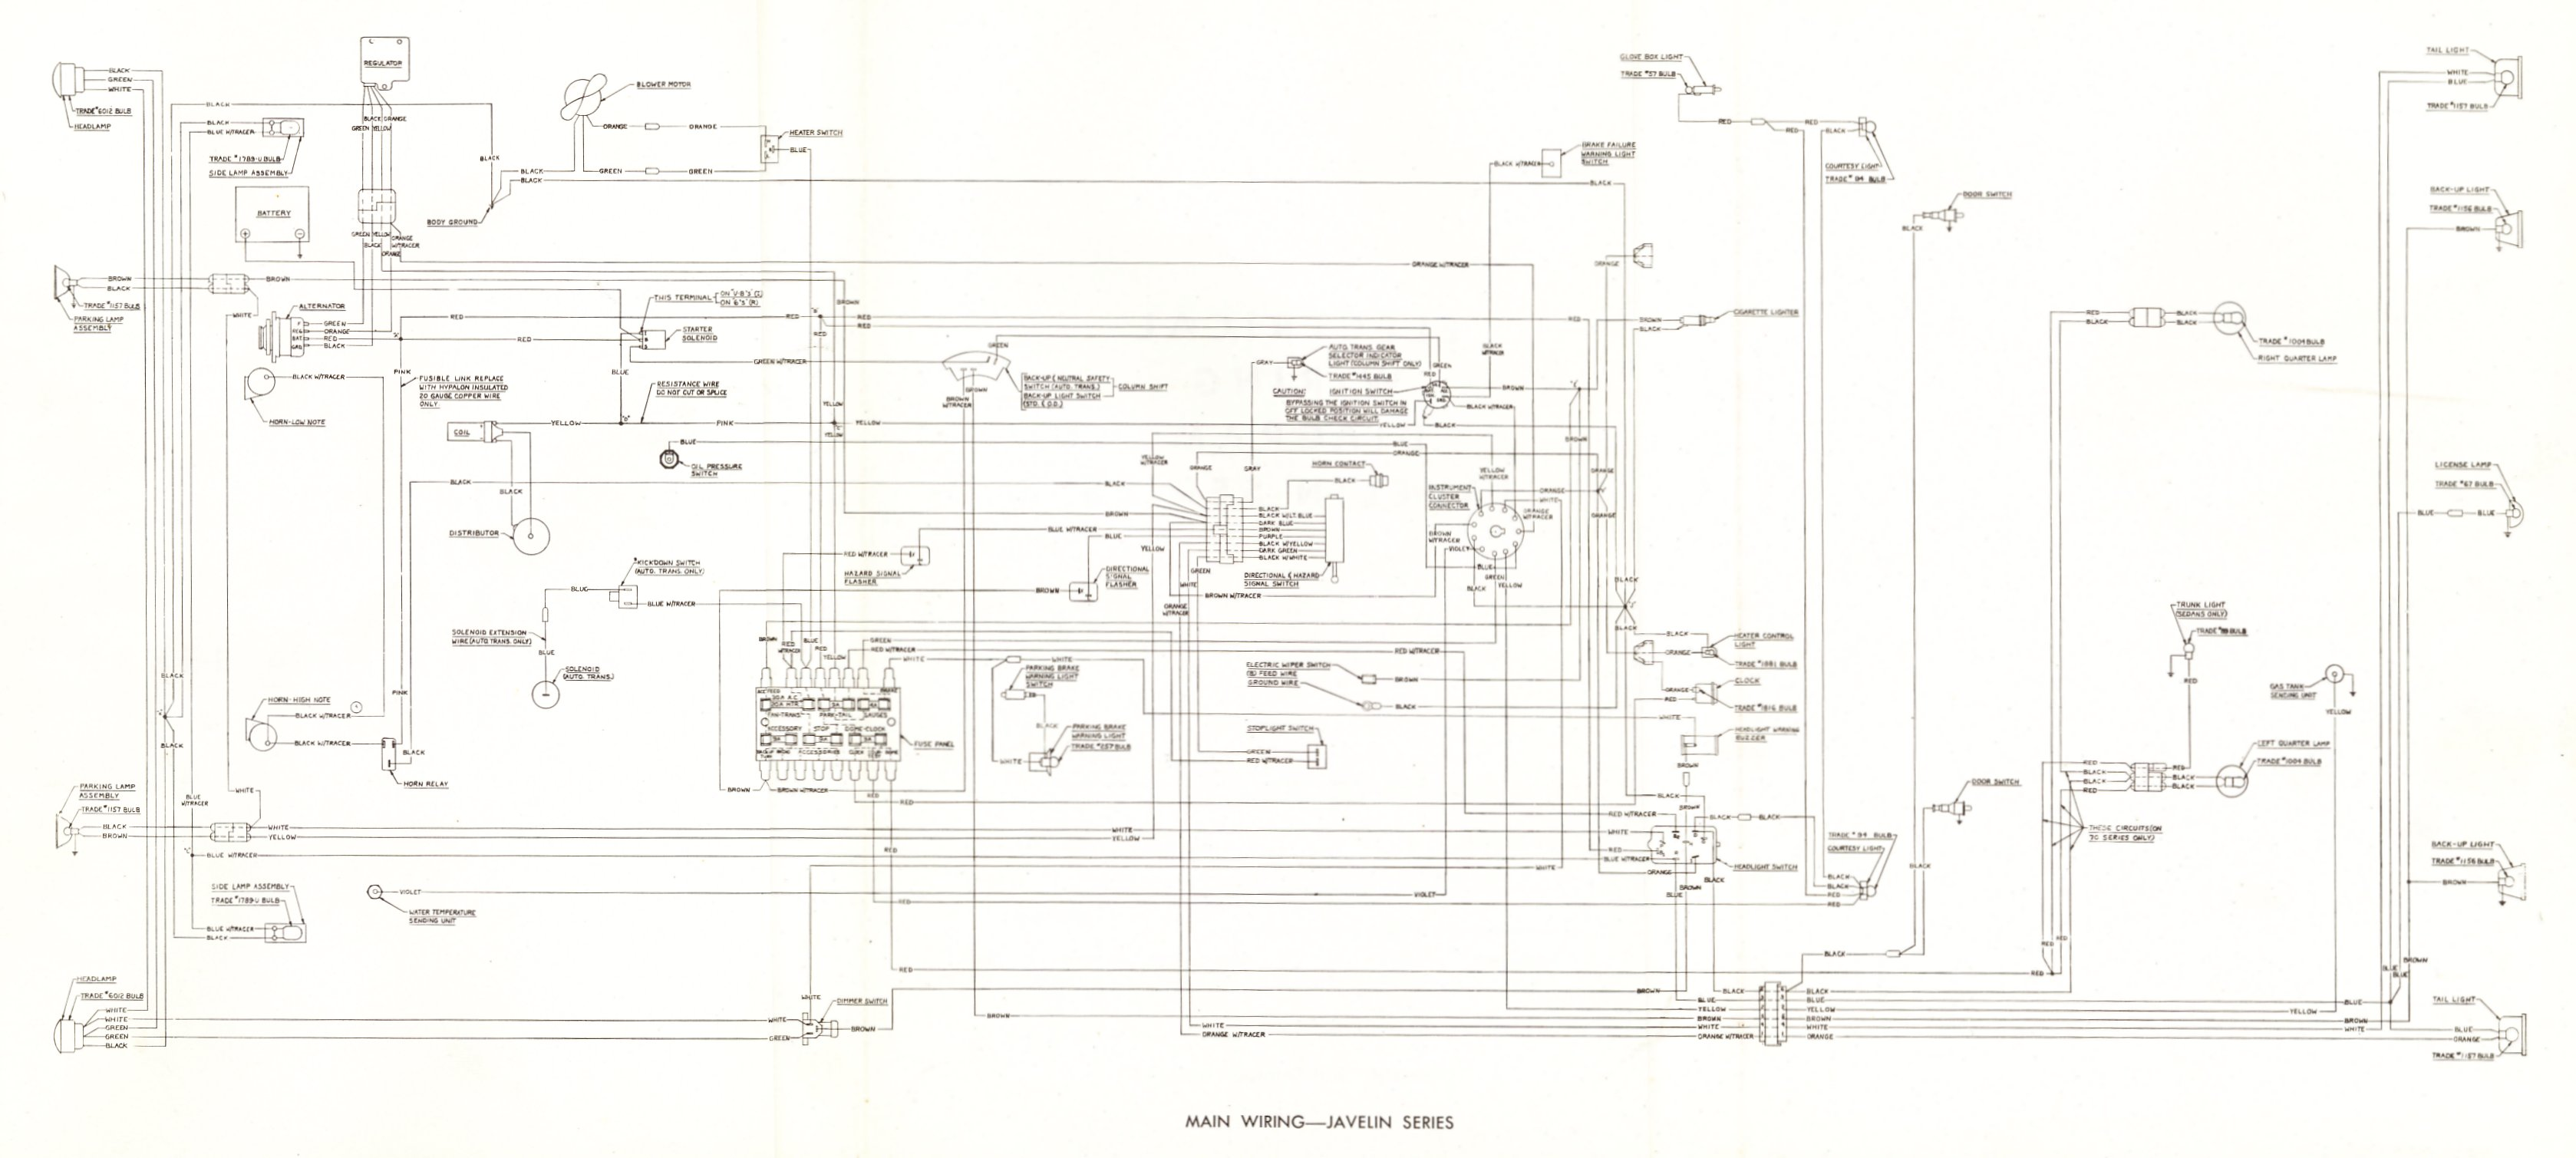 1968_javelin_wiring_diagram technical amc javelin wiring diagram at panicattacktreatment.co